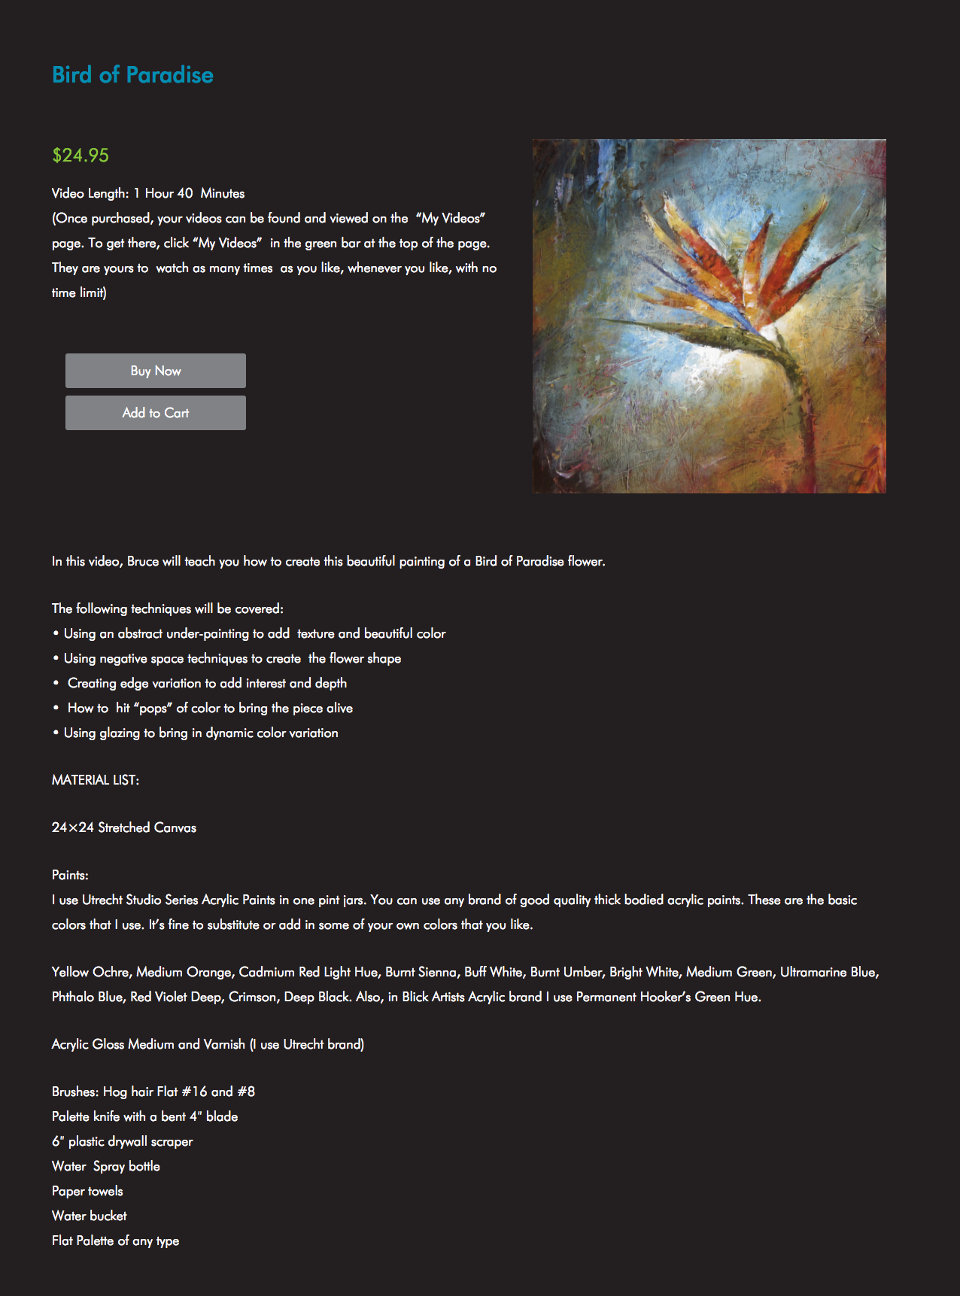 e-commerce detail page for selling painting lesson video